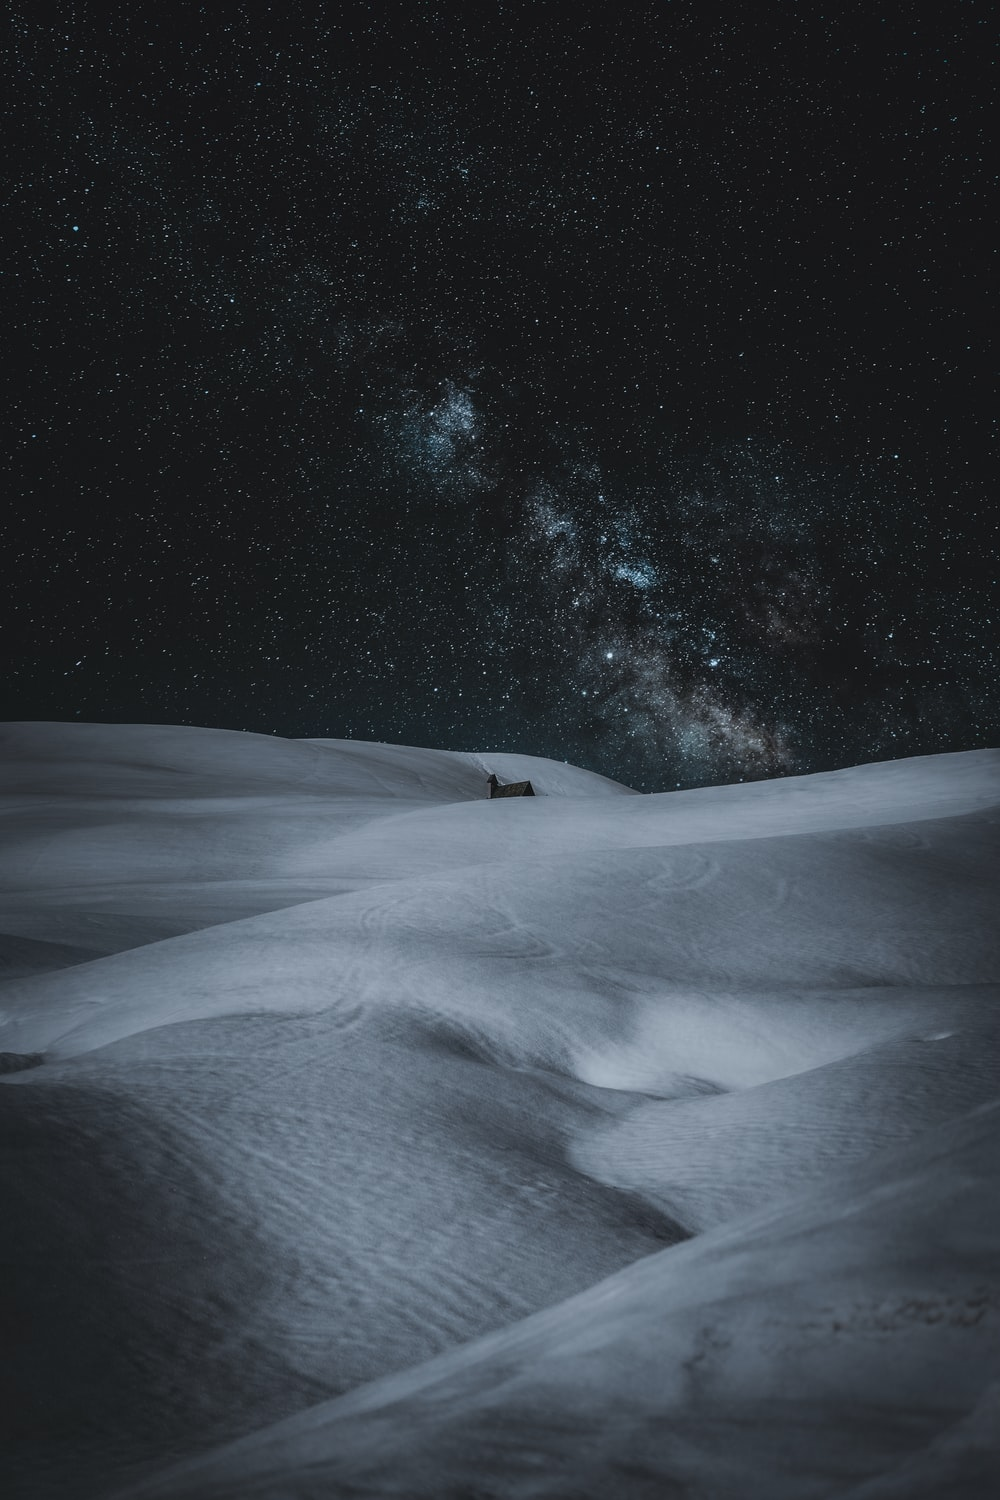 snow covered field during night time